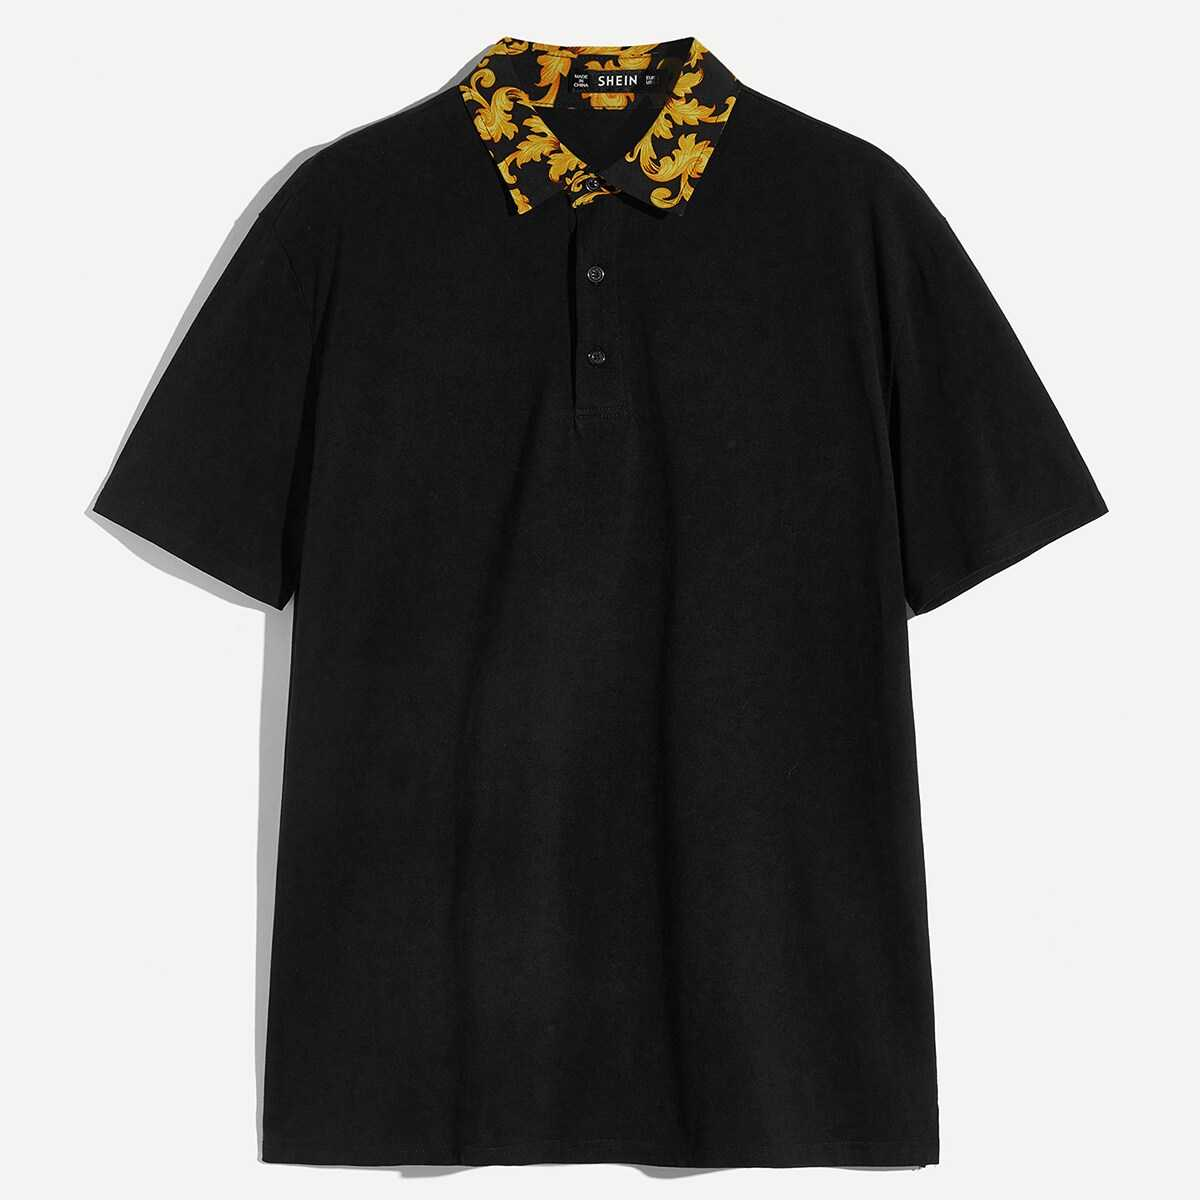 Guys Retro Print Collar Polo Shirt in Black by ROMWE on GOOFASH